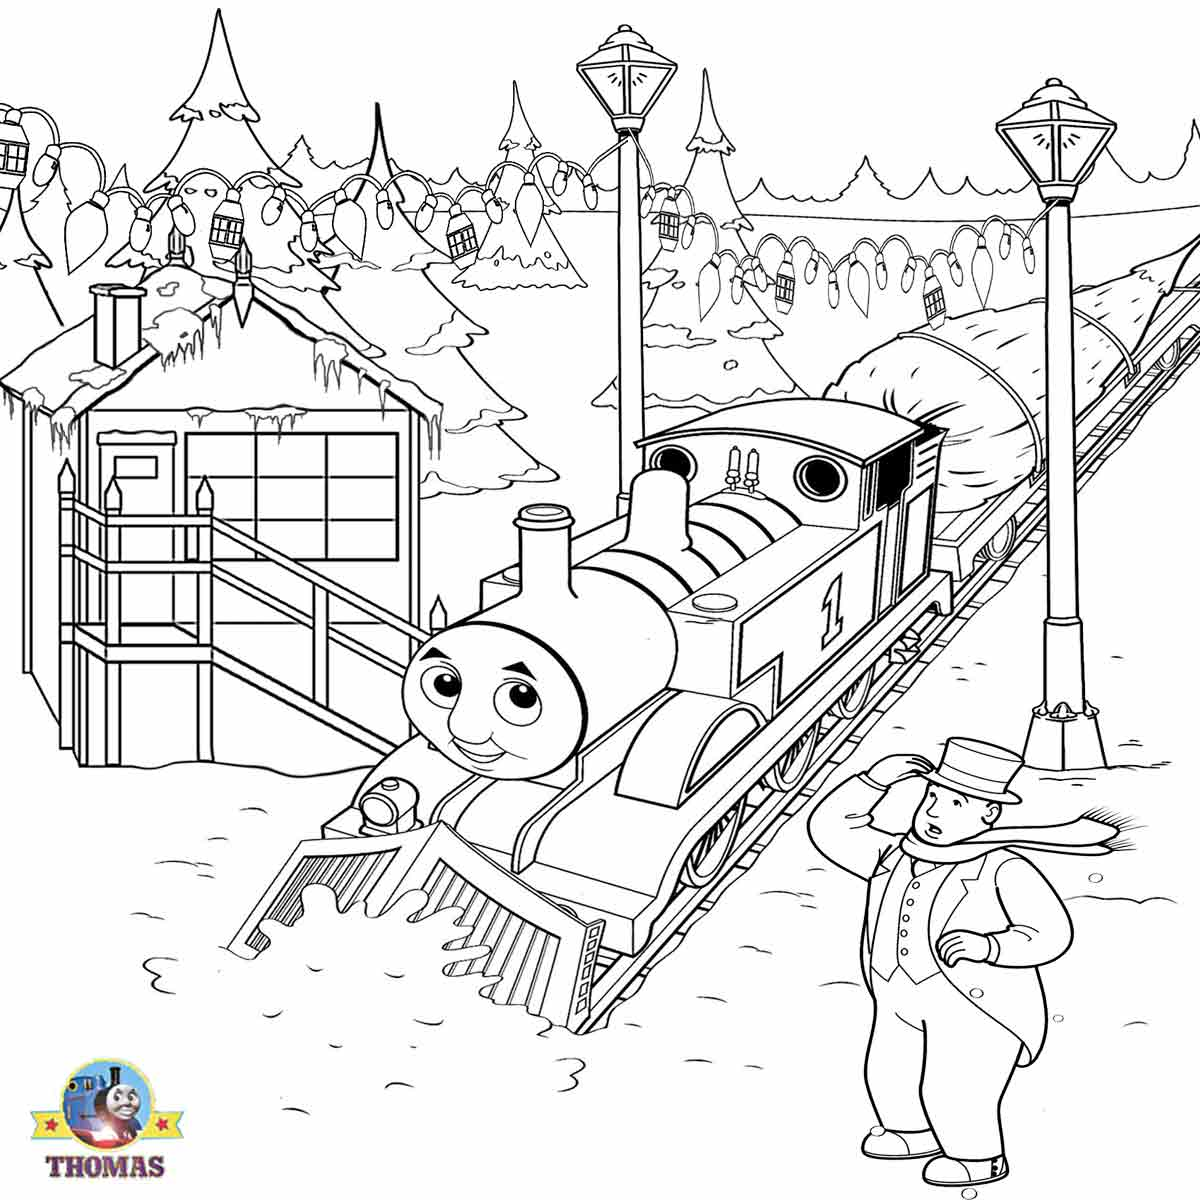 coloring pages thomas and friends | Train Thomas the tank engine Friends free online games and ...